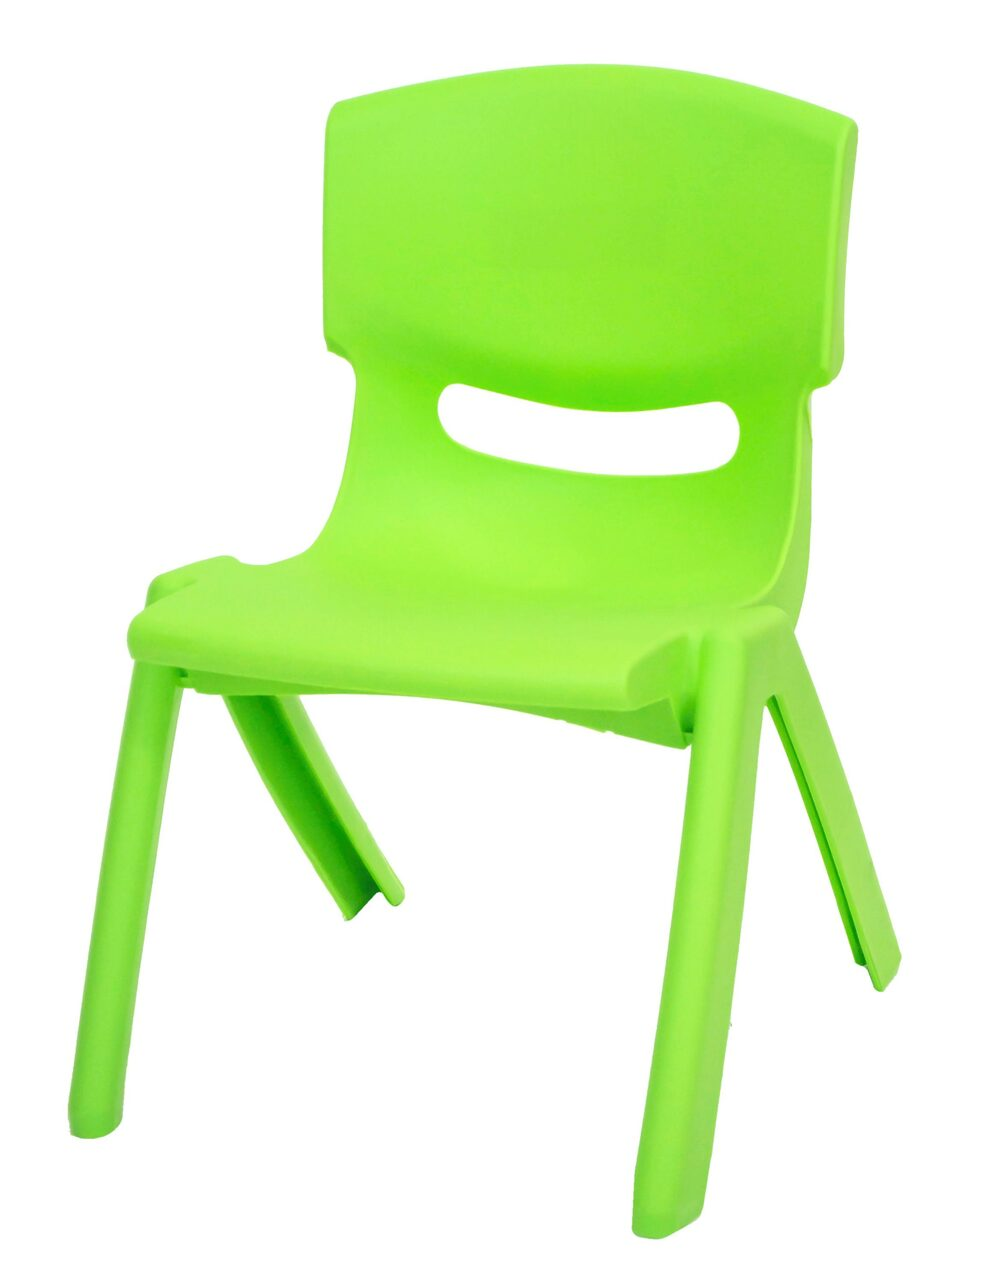 Stackable Children's Plastic Chairs Green